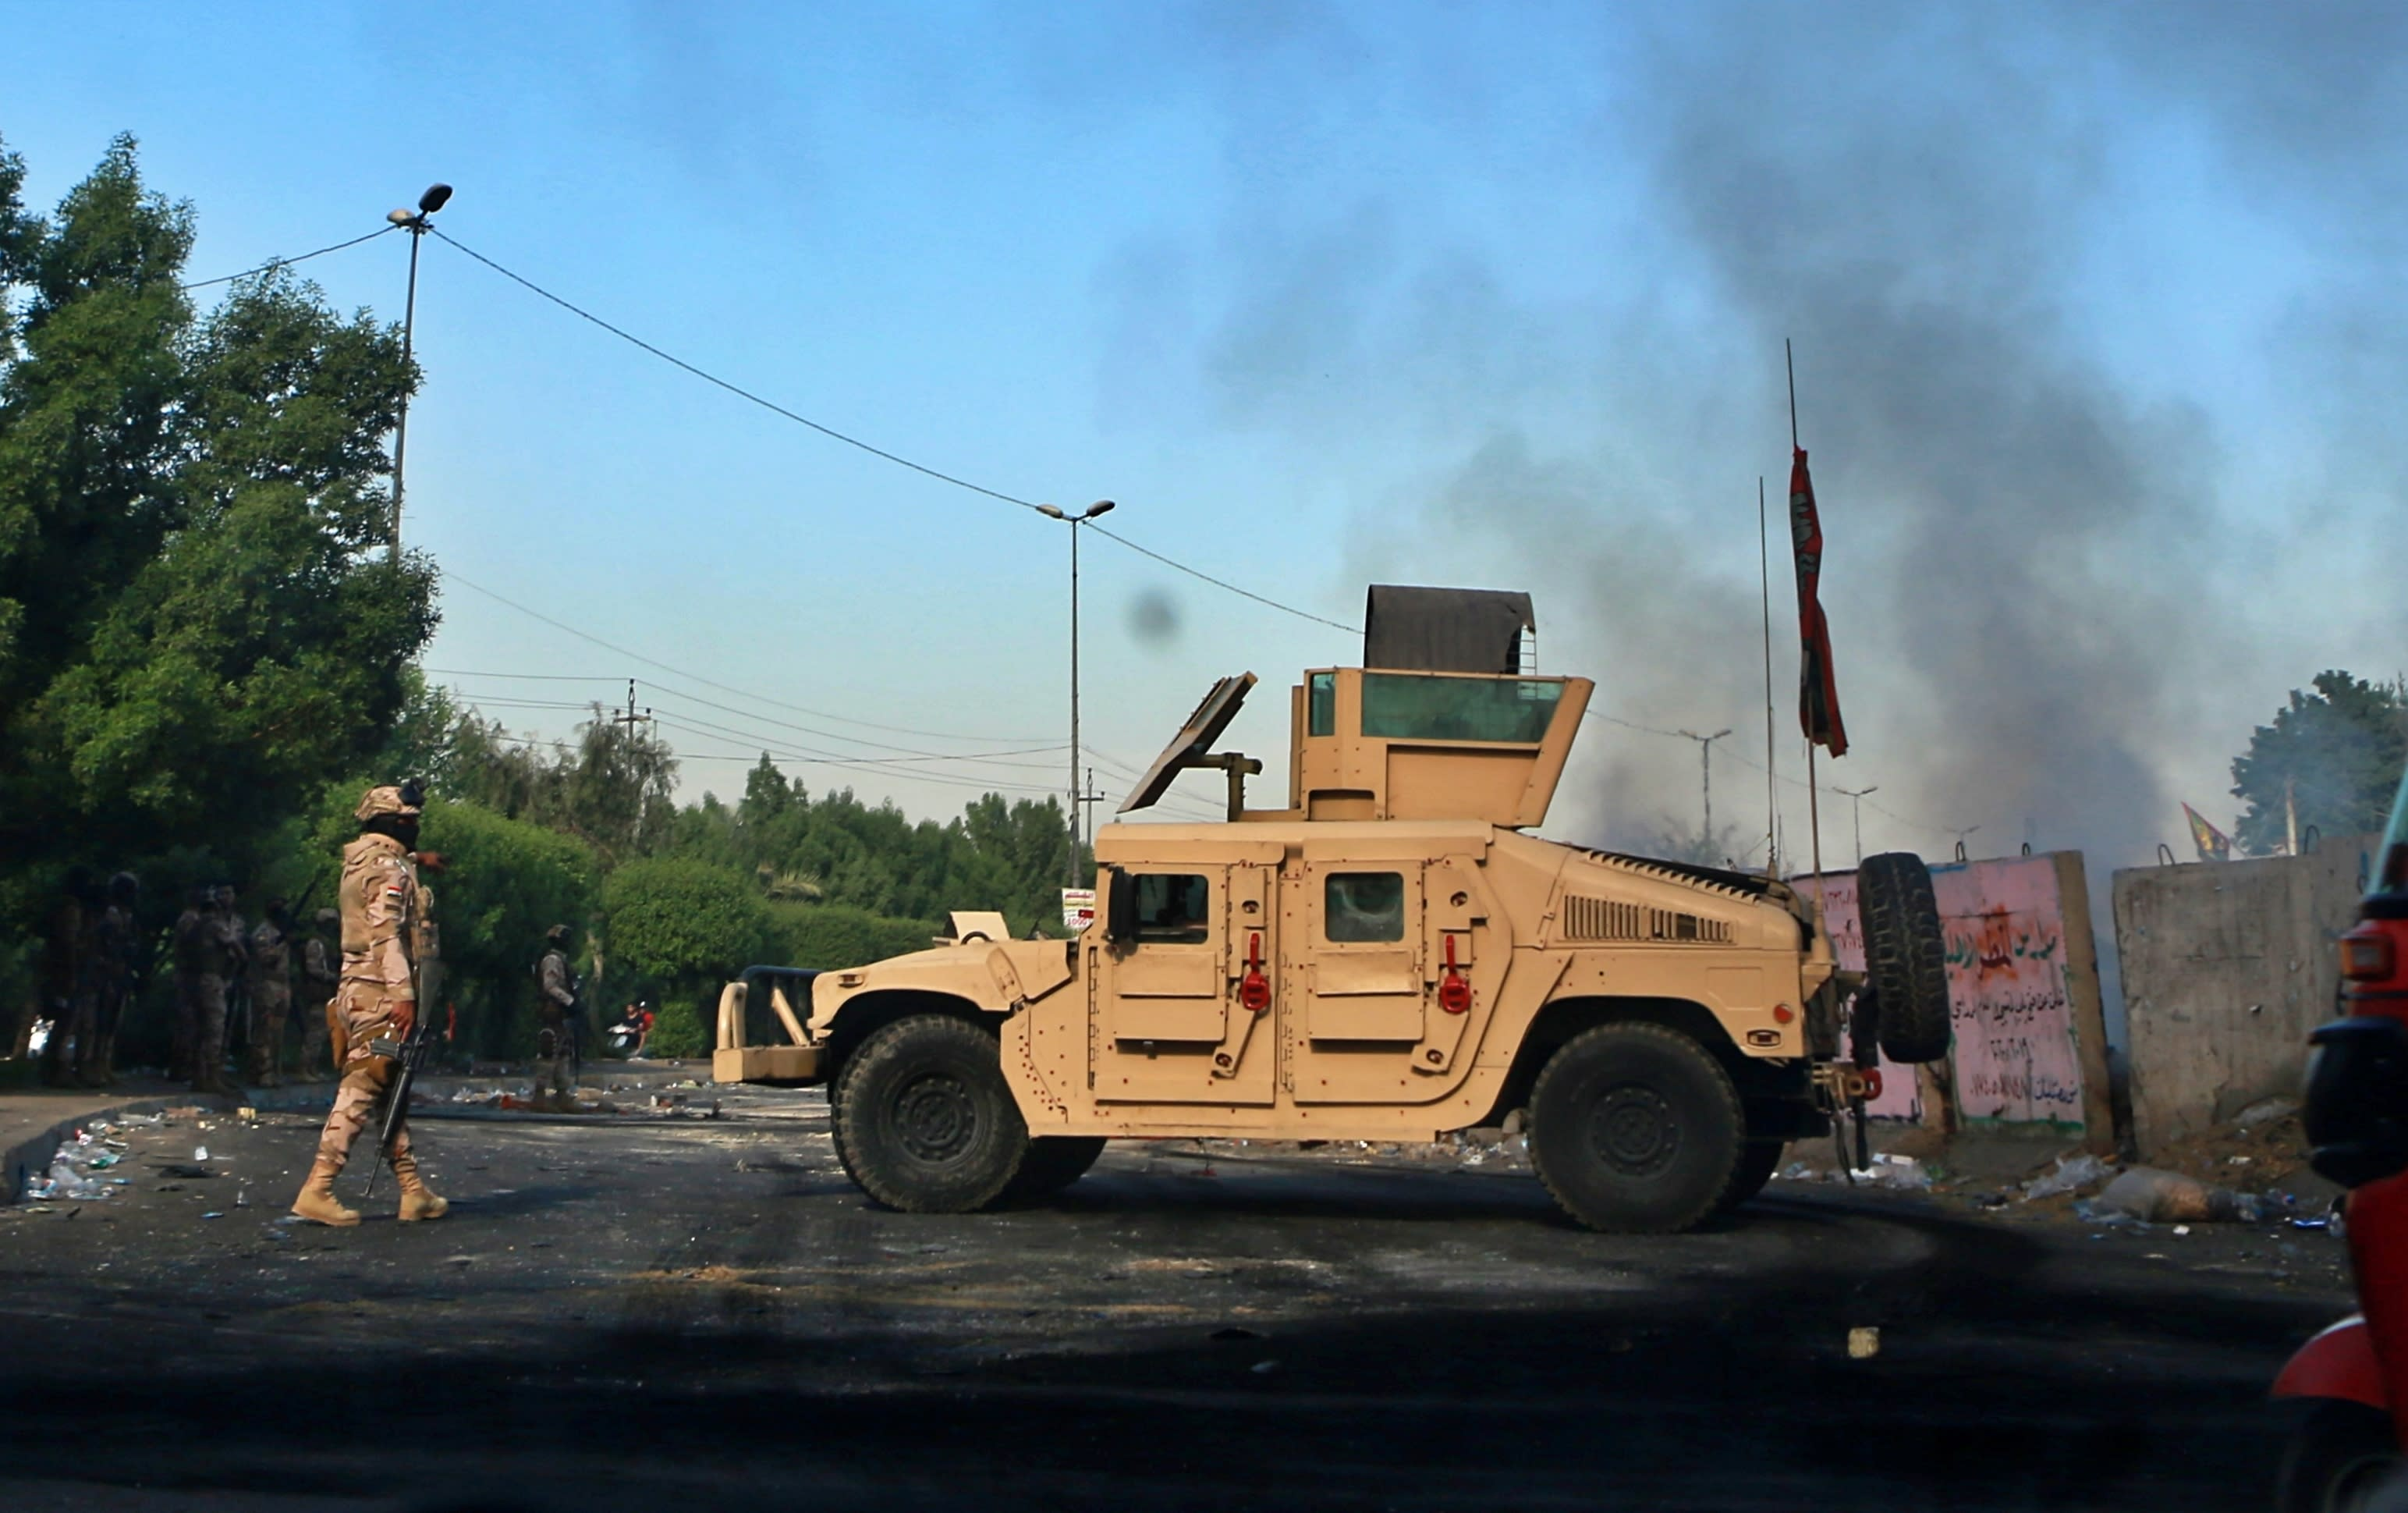 Iraqi Army troops deploy at a site of protests in Baghdad, Iraq, Sunday, Oct. 6, 2019. The spontaneous protests which started Tuesday in Baghdad and southern cities were sparked by endemic corruption and lack of jobs. Security forces responded with a harsh crackdown, with dozens killed. (AP Photo/Khalid Mohammed)